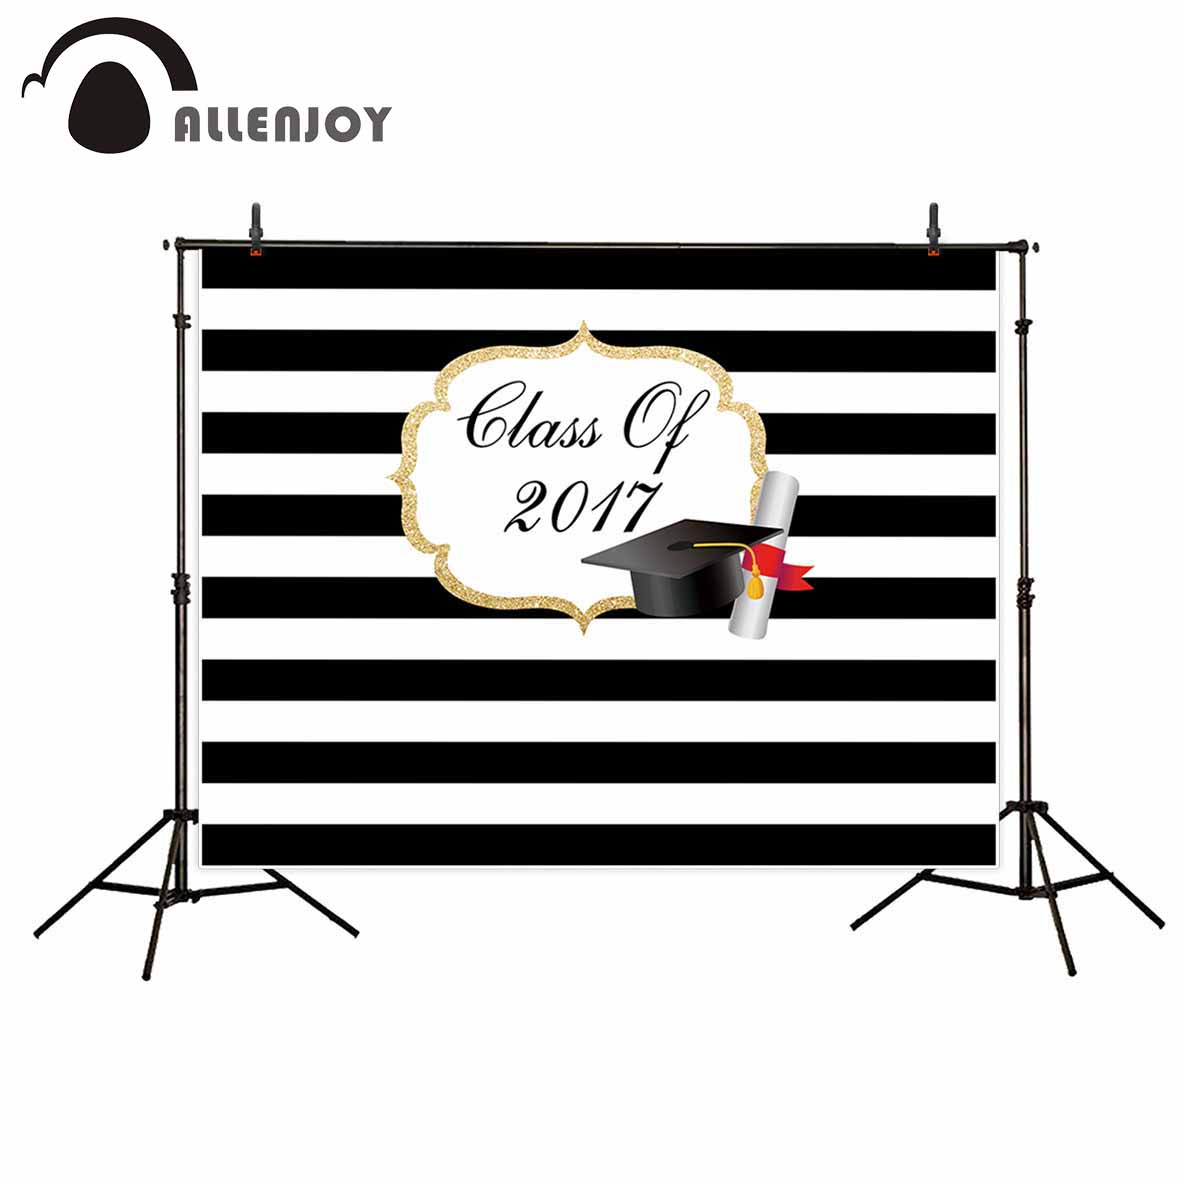 Allenjoy photography backdrop Black and white stripes LOGO custom graduation background newborn original design for photo studio allenjoy photography backdrop library books student child newborn photo studio photocall background original design